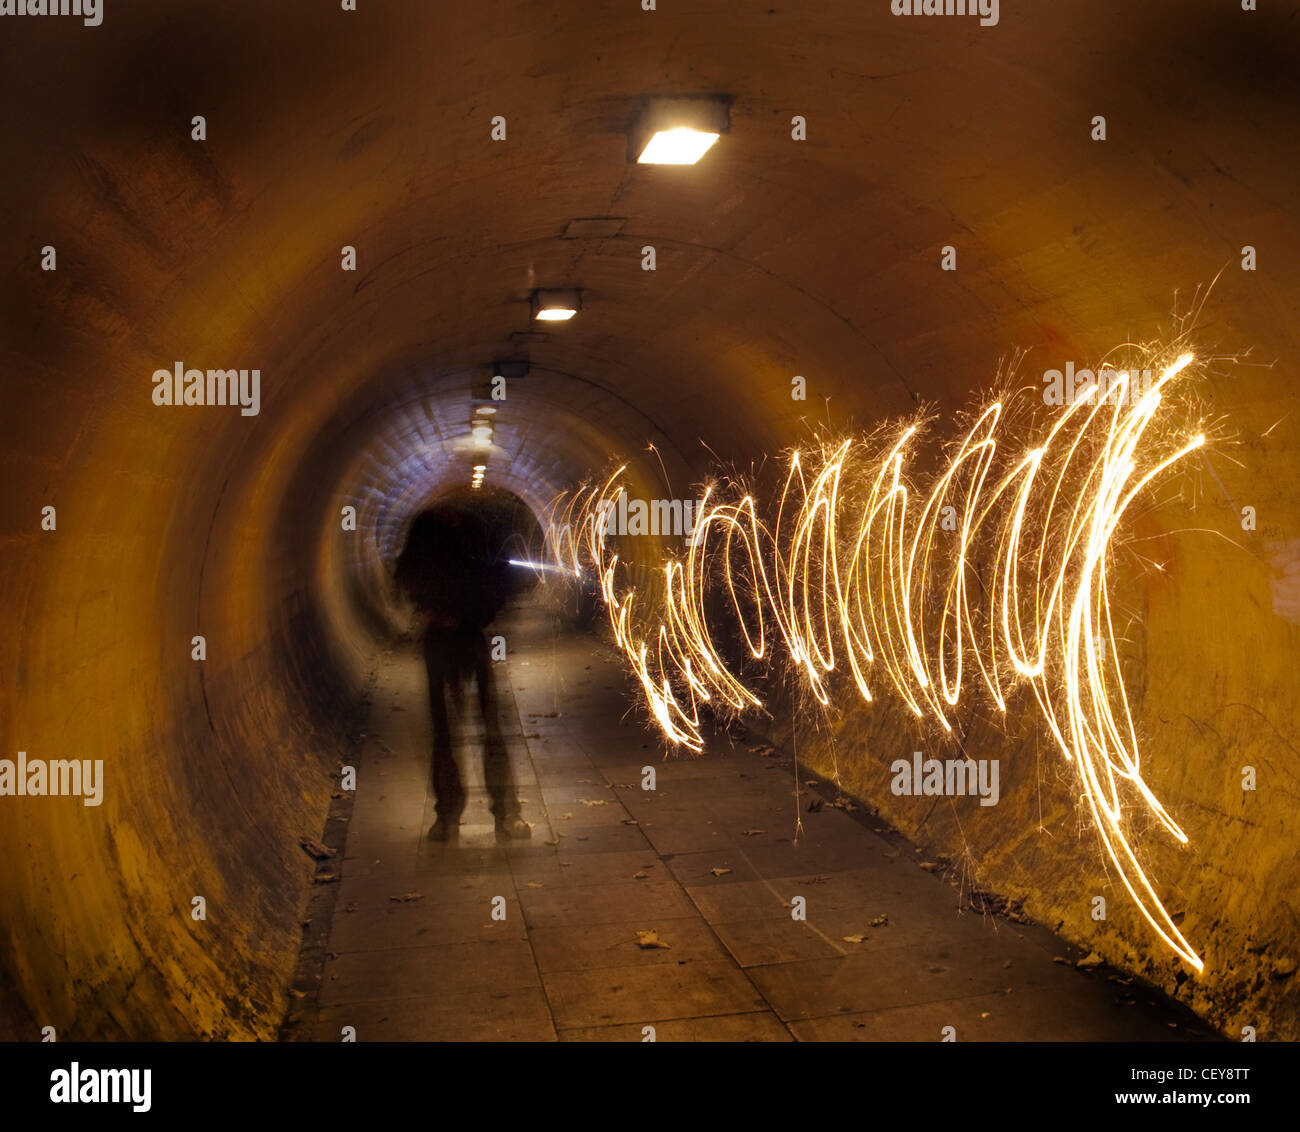 gotonysmith,A,man,in,a,tunnel,at,night,tunnelvision,vision,underground,under,ground,lights,shaking,a,sparkler,swimming,with,light,night,dusk,time,book,cover,path,man,person,figure,walk,walking,london,firework,of,light,painting,with,light,Latchford,London Underground,painting with light,Warrington,Cheshire,A50,road,bridge,gotonysmith,Buy Pictures of,Buy Images Of